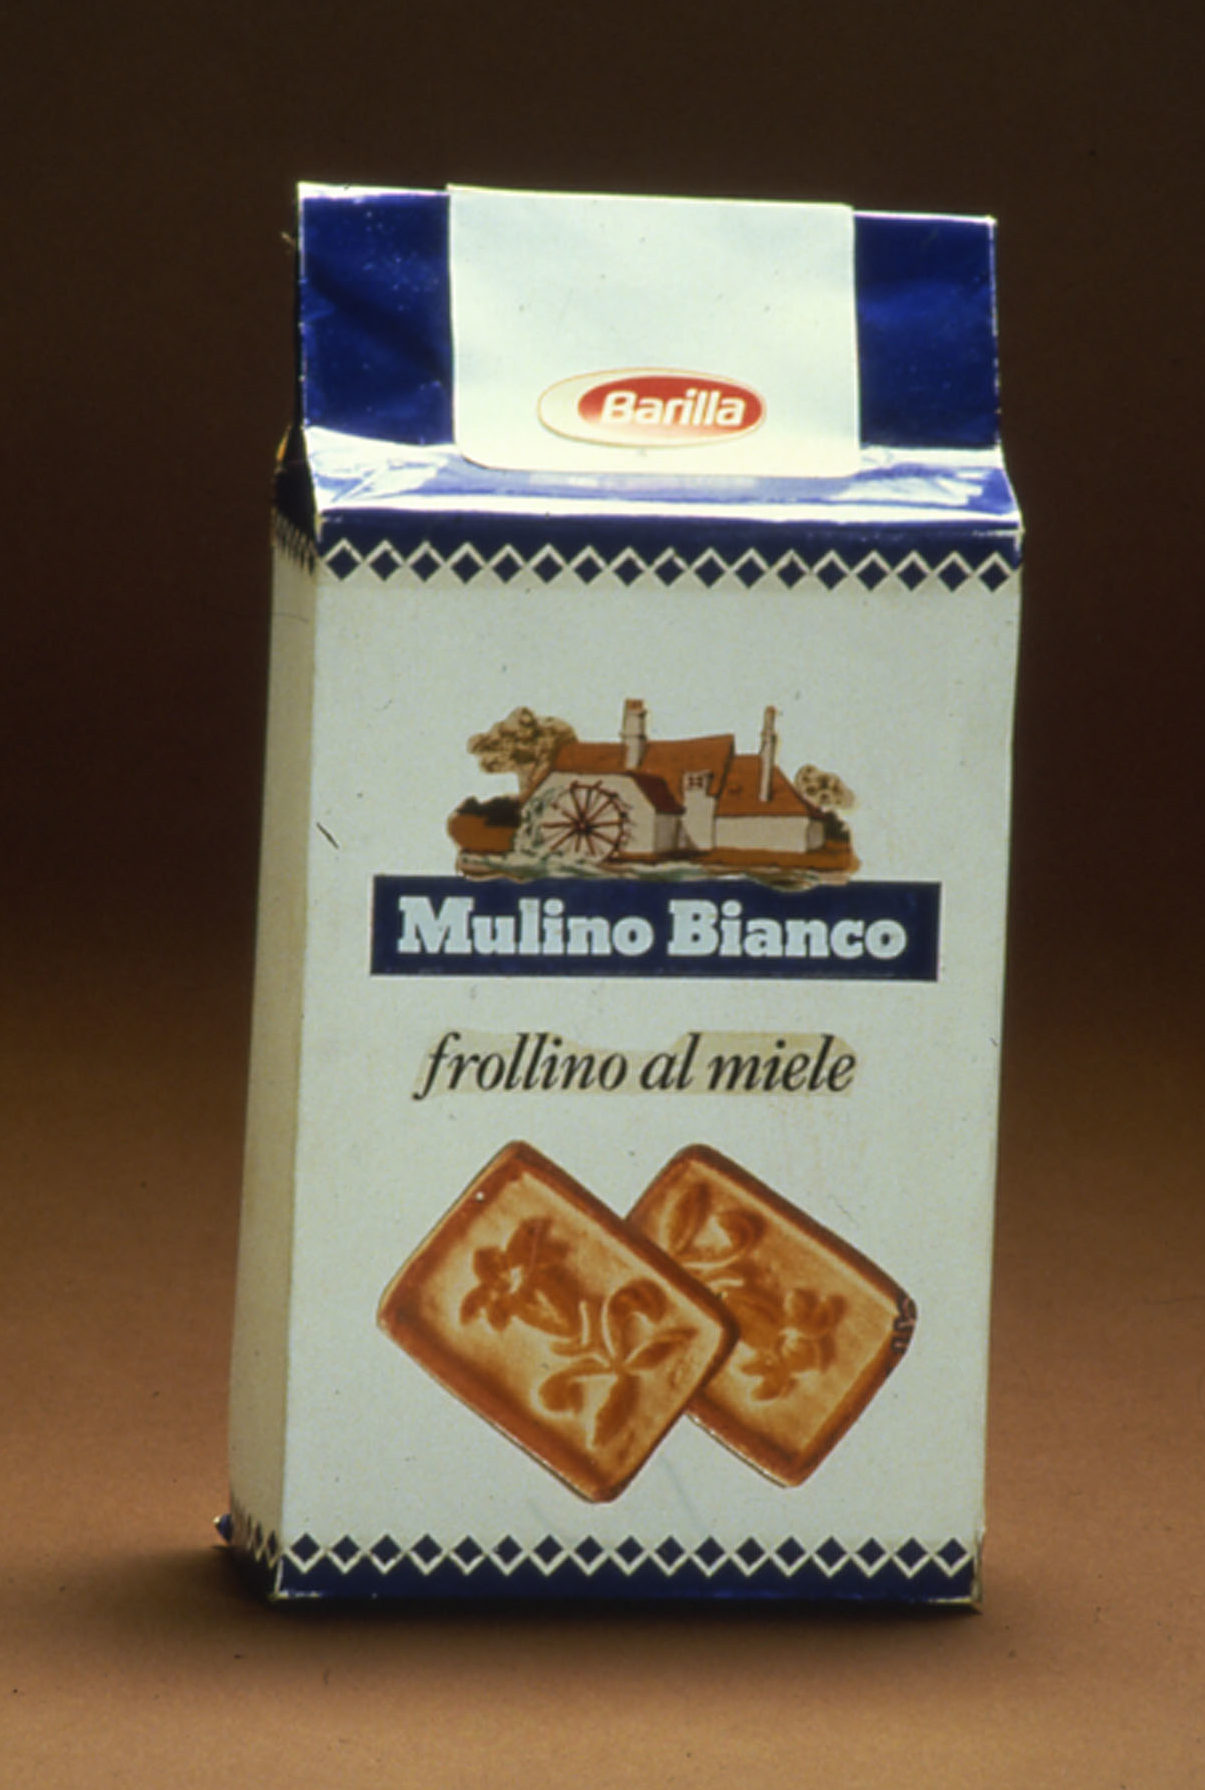 First studies for Mulino Bianco packaging